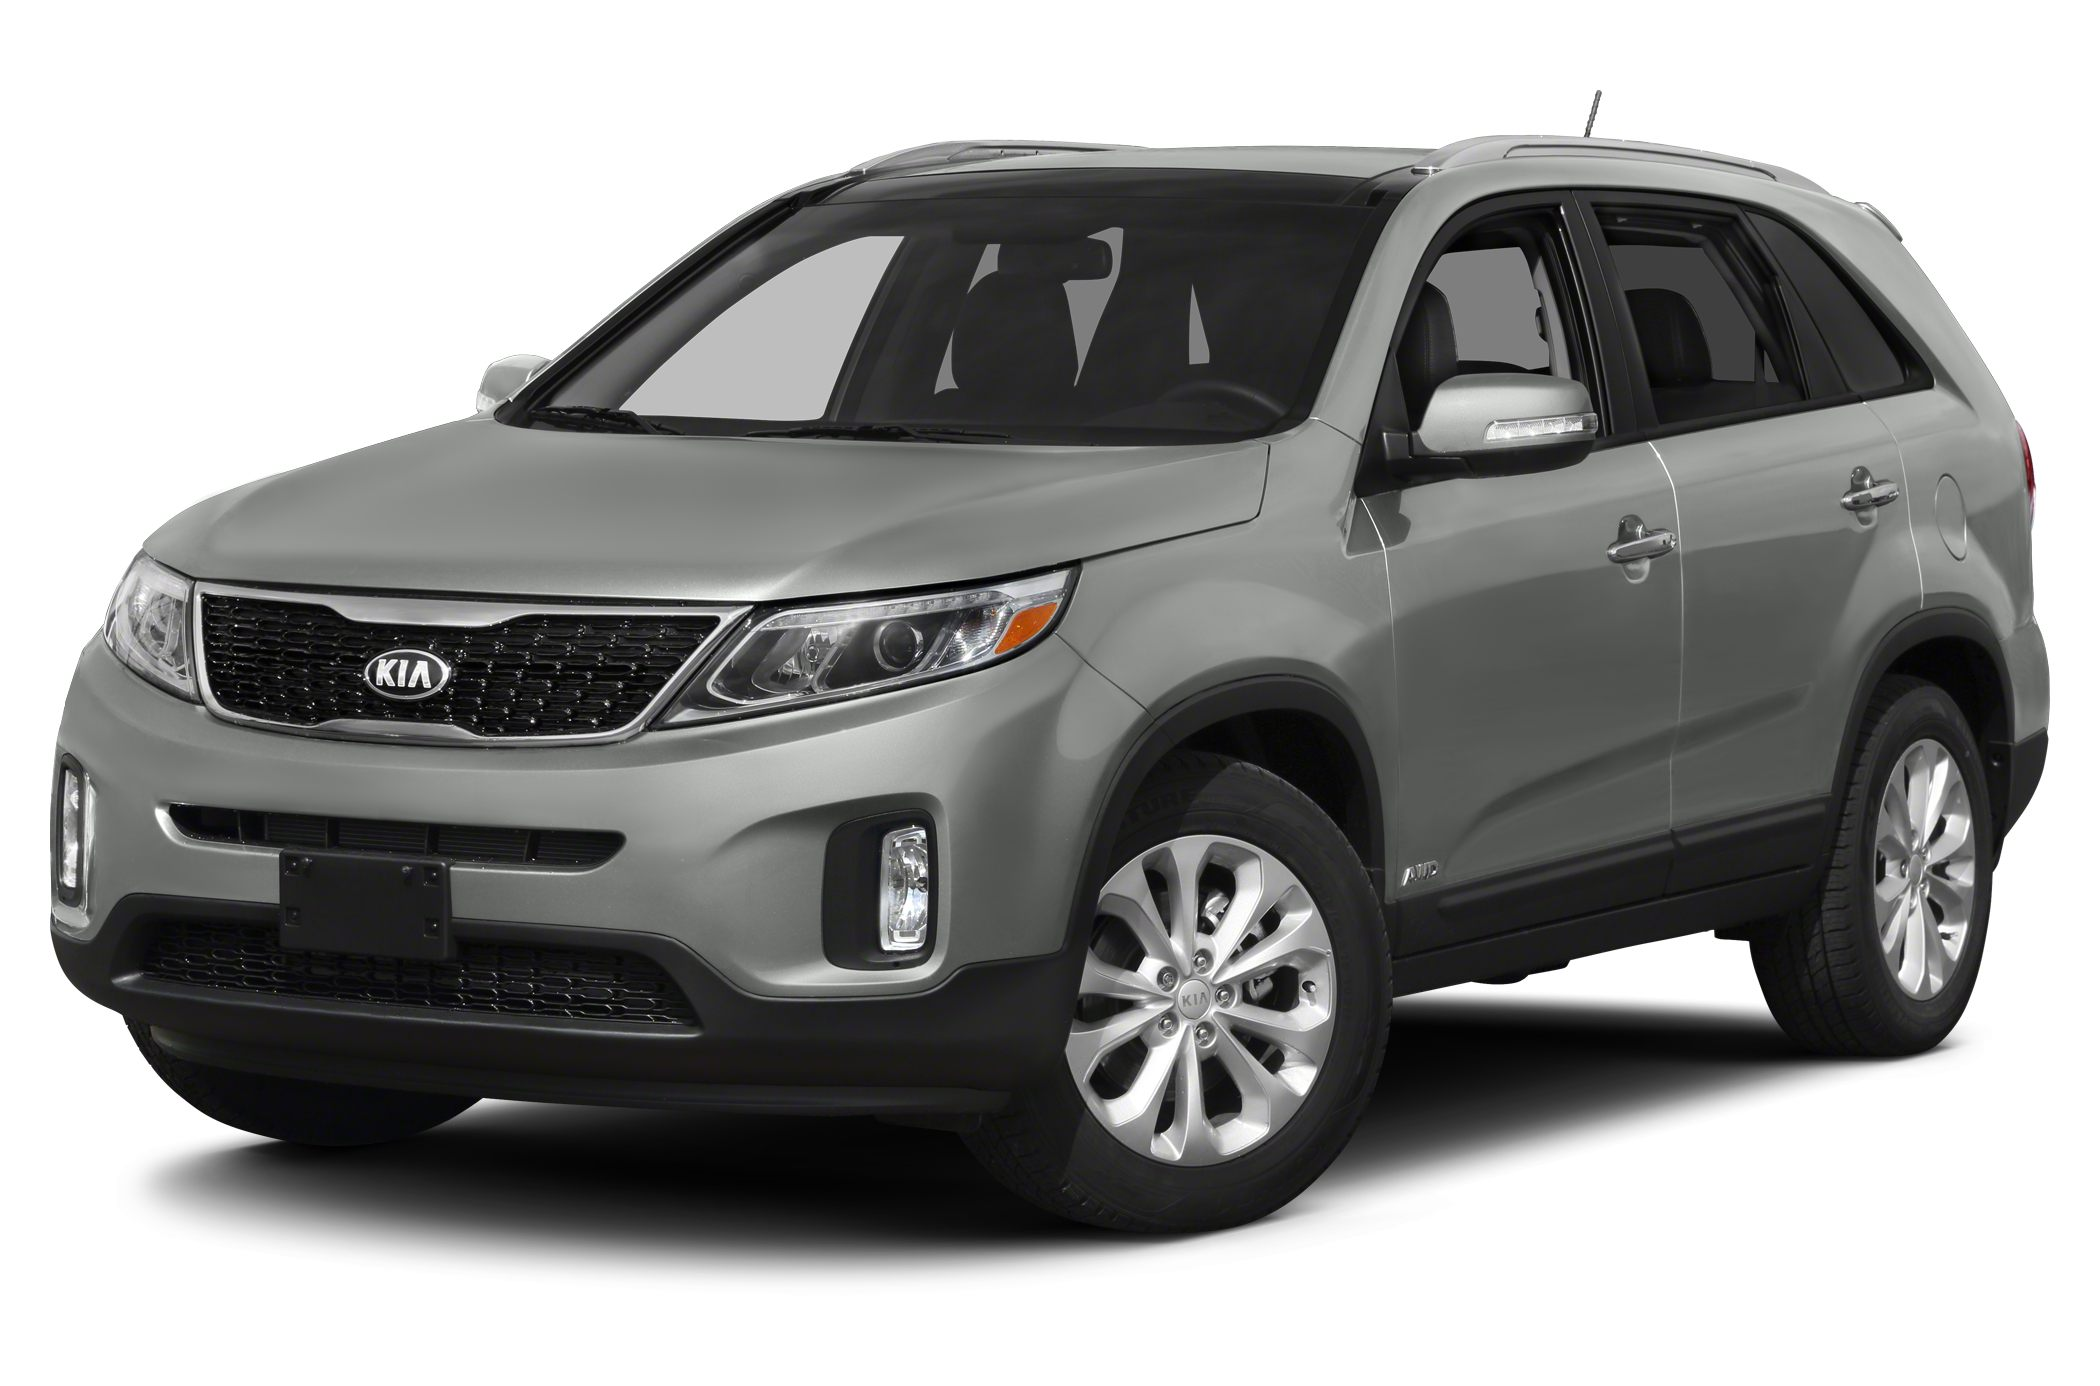 2014 Kia Sorento LX Certified Vehicle New Arrival This 2014 Kia Sorento LX will sell fast -Bl